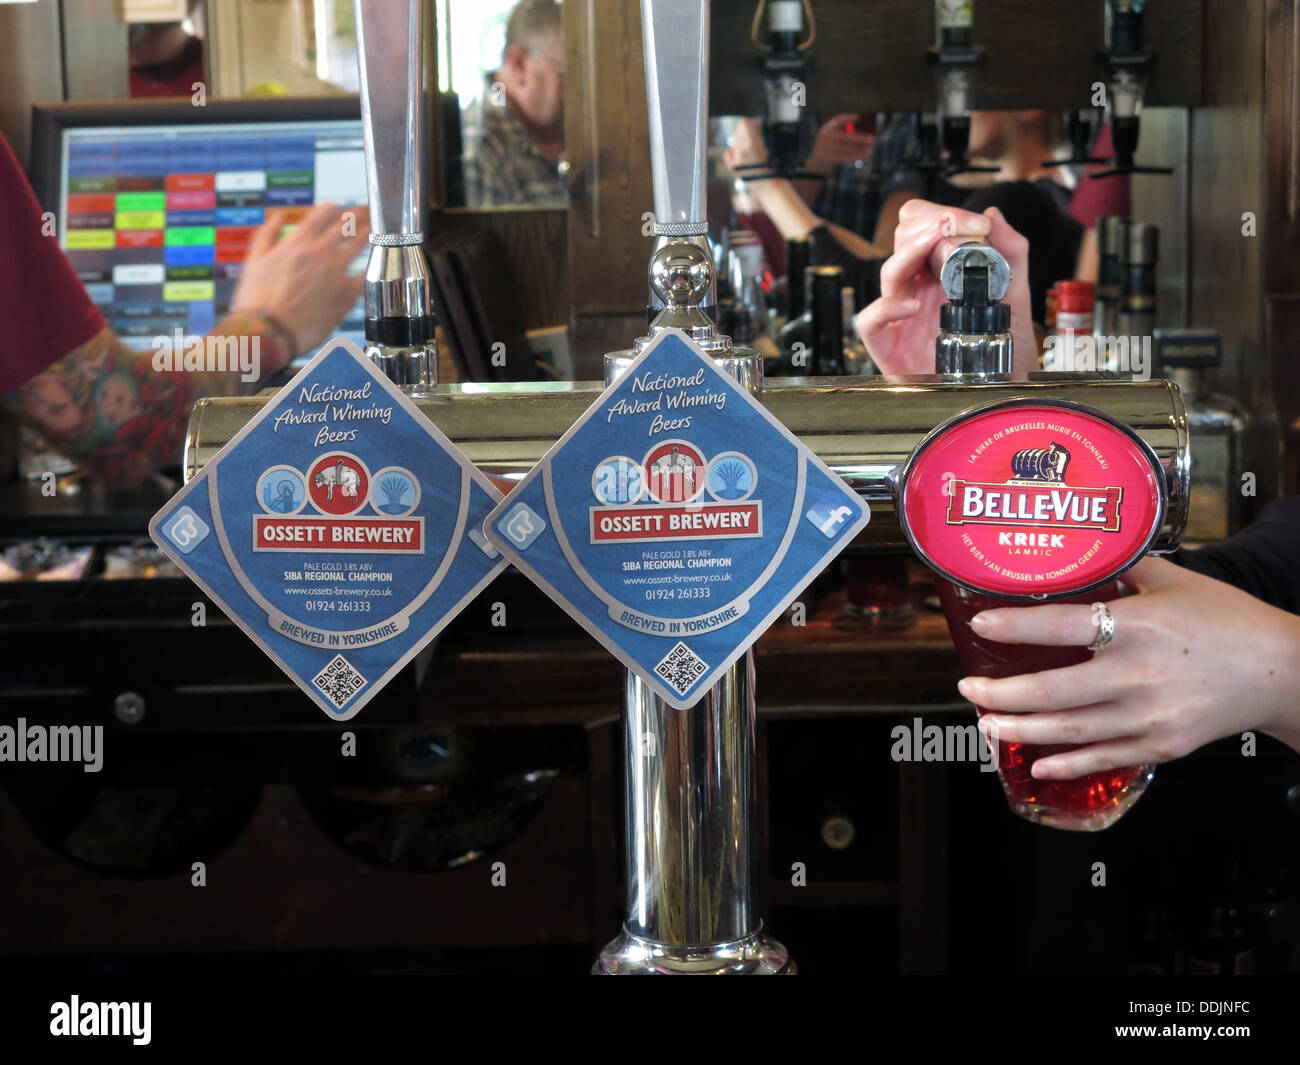 Ossett Brewery and BelleVue Kriek beer pumps at Marsden, TransPennine Ale Trail, The Riverhead Brewery Tap - Stock Image